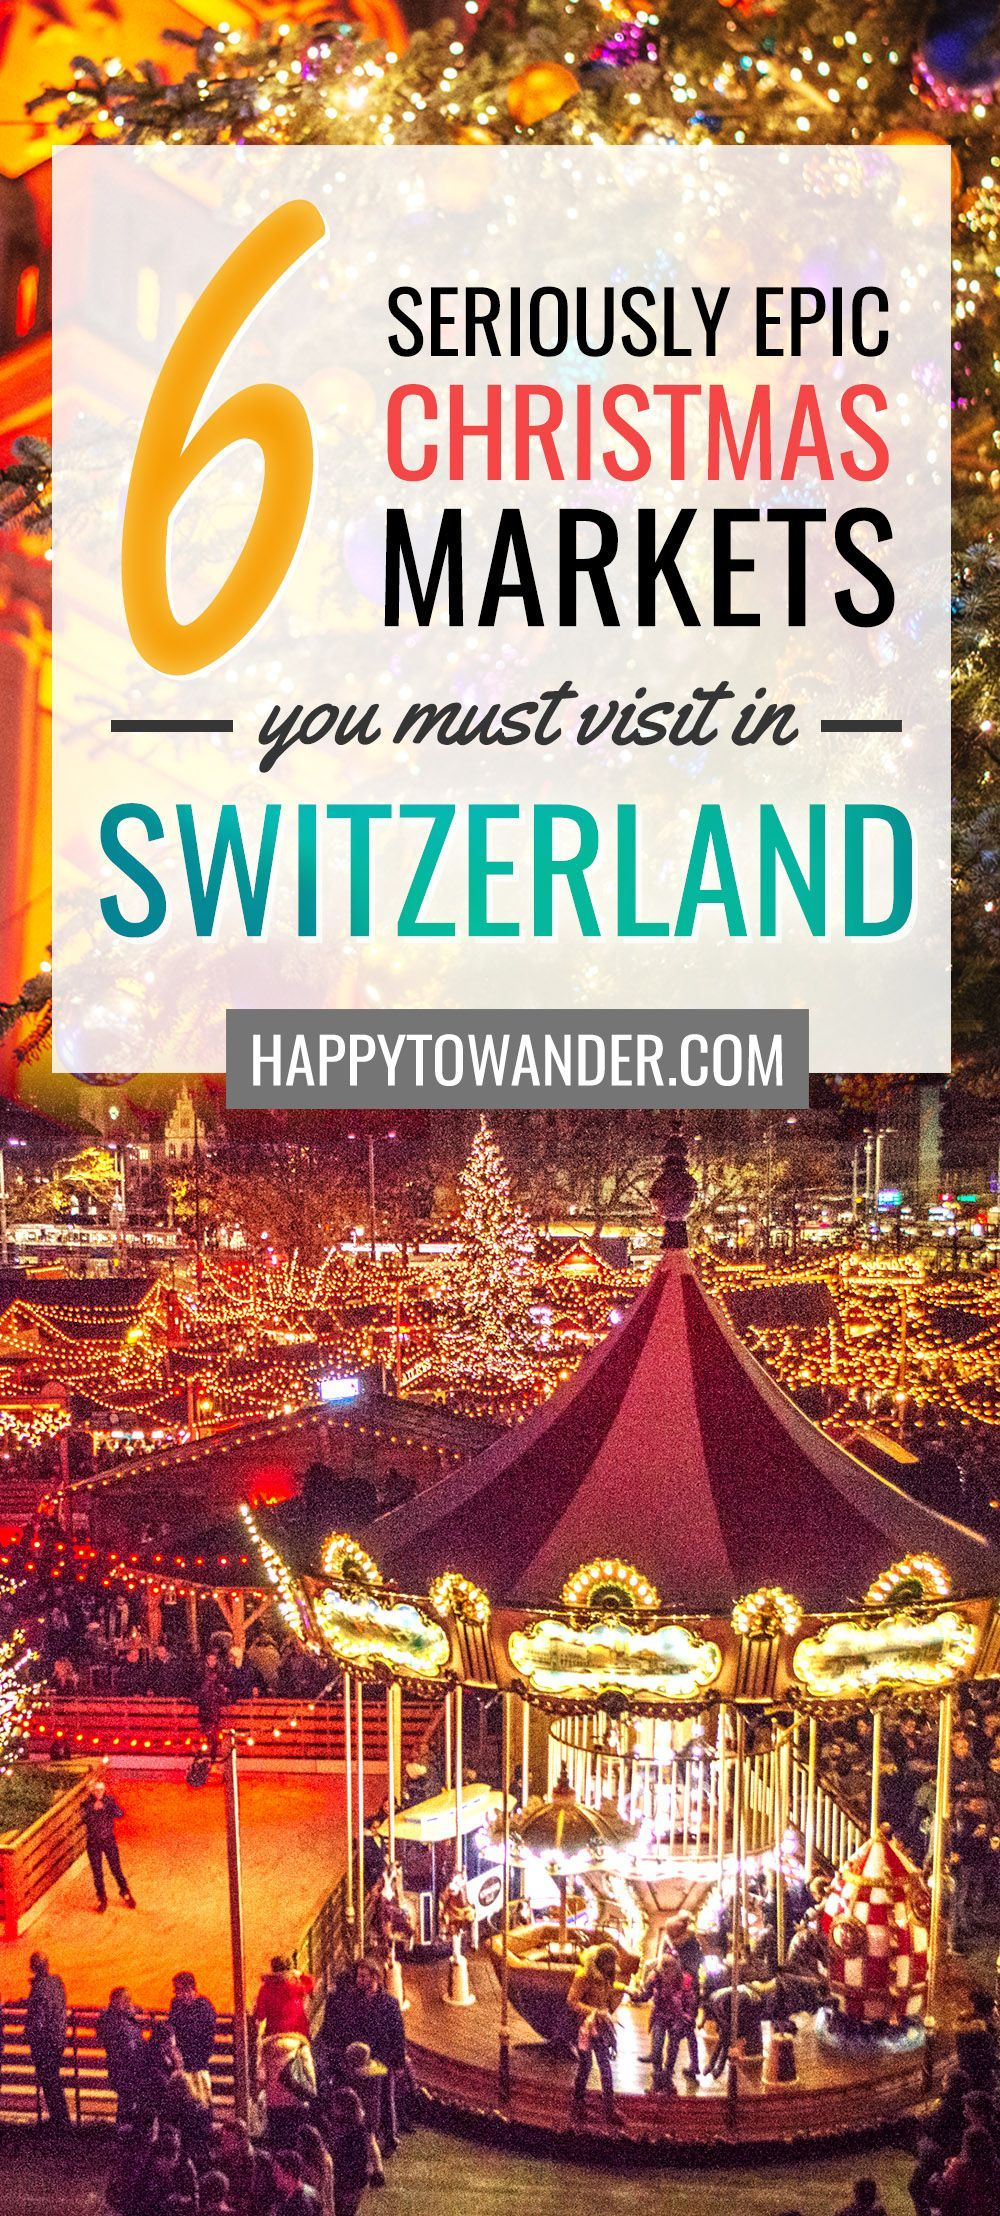 Christmas Destinations in Switzerland You MUST Visit! The BEST Christmas markets in Switzerland. If you're looking for a thorough and comprehensive Switzerland Christmas guide, this is it!The BEST Christmas markets in Switzerland. If you're looking for a thorough and comprehensive Switzerland Christmas guide, this is it!